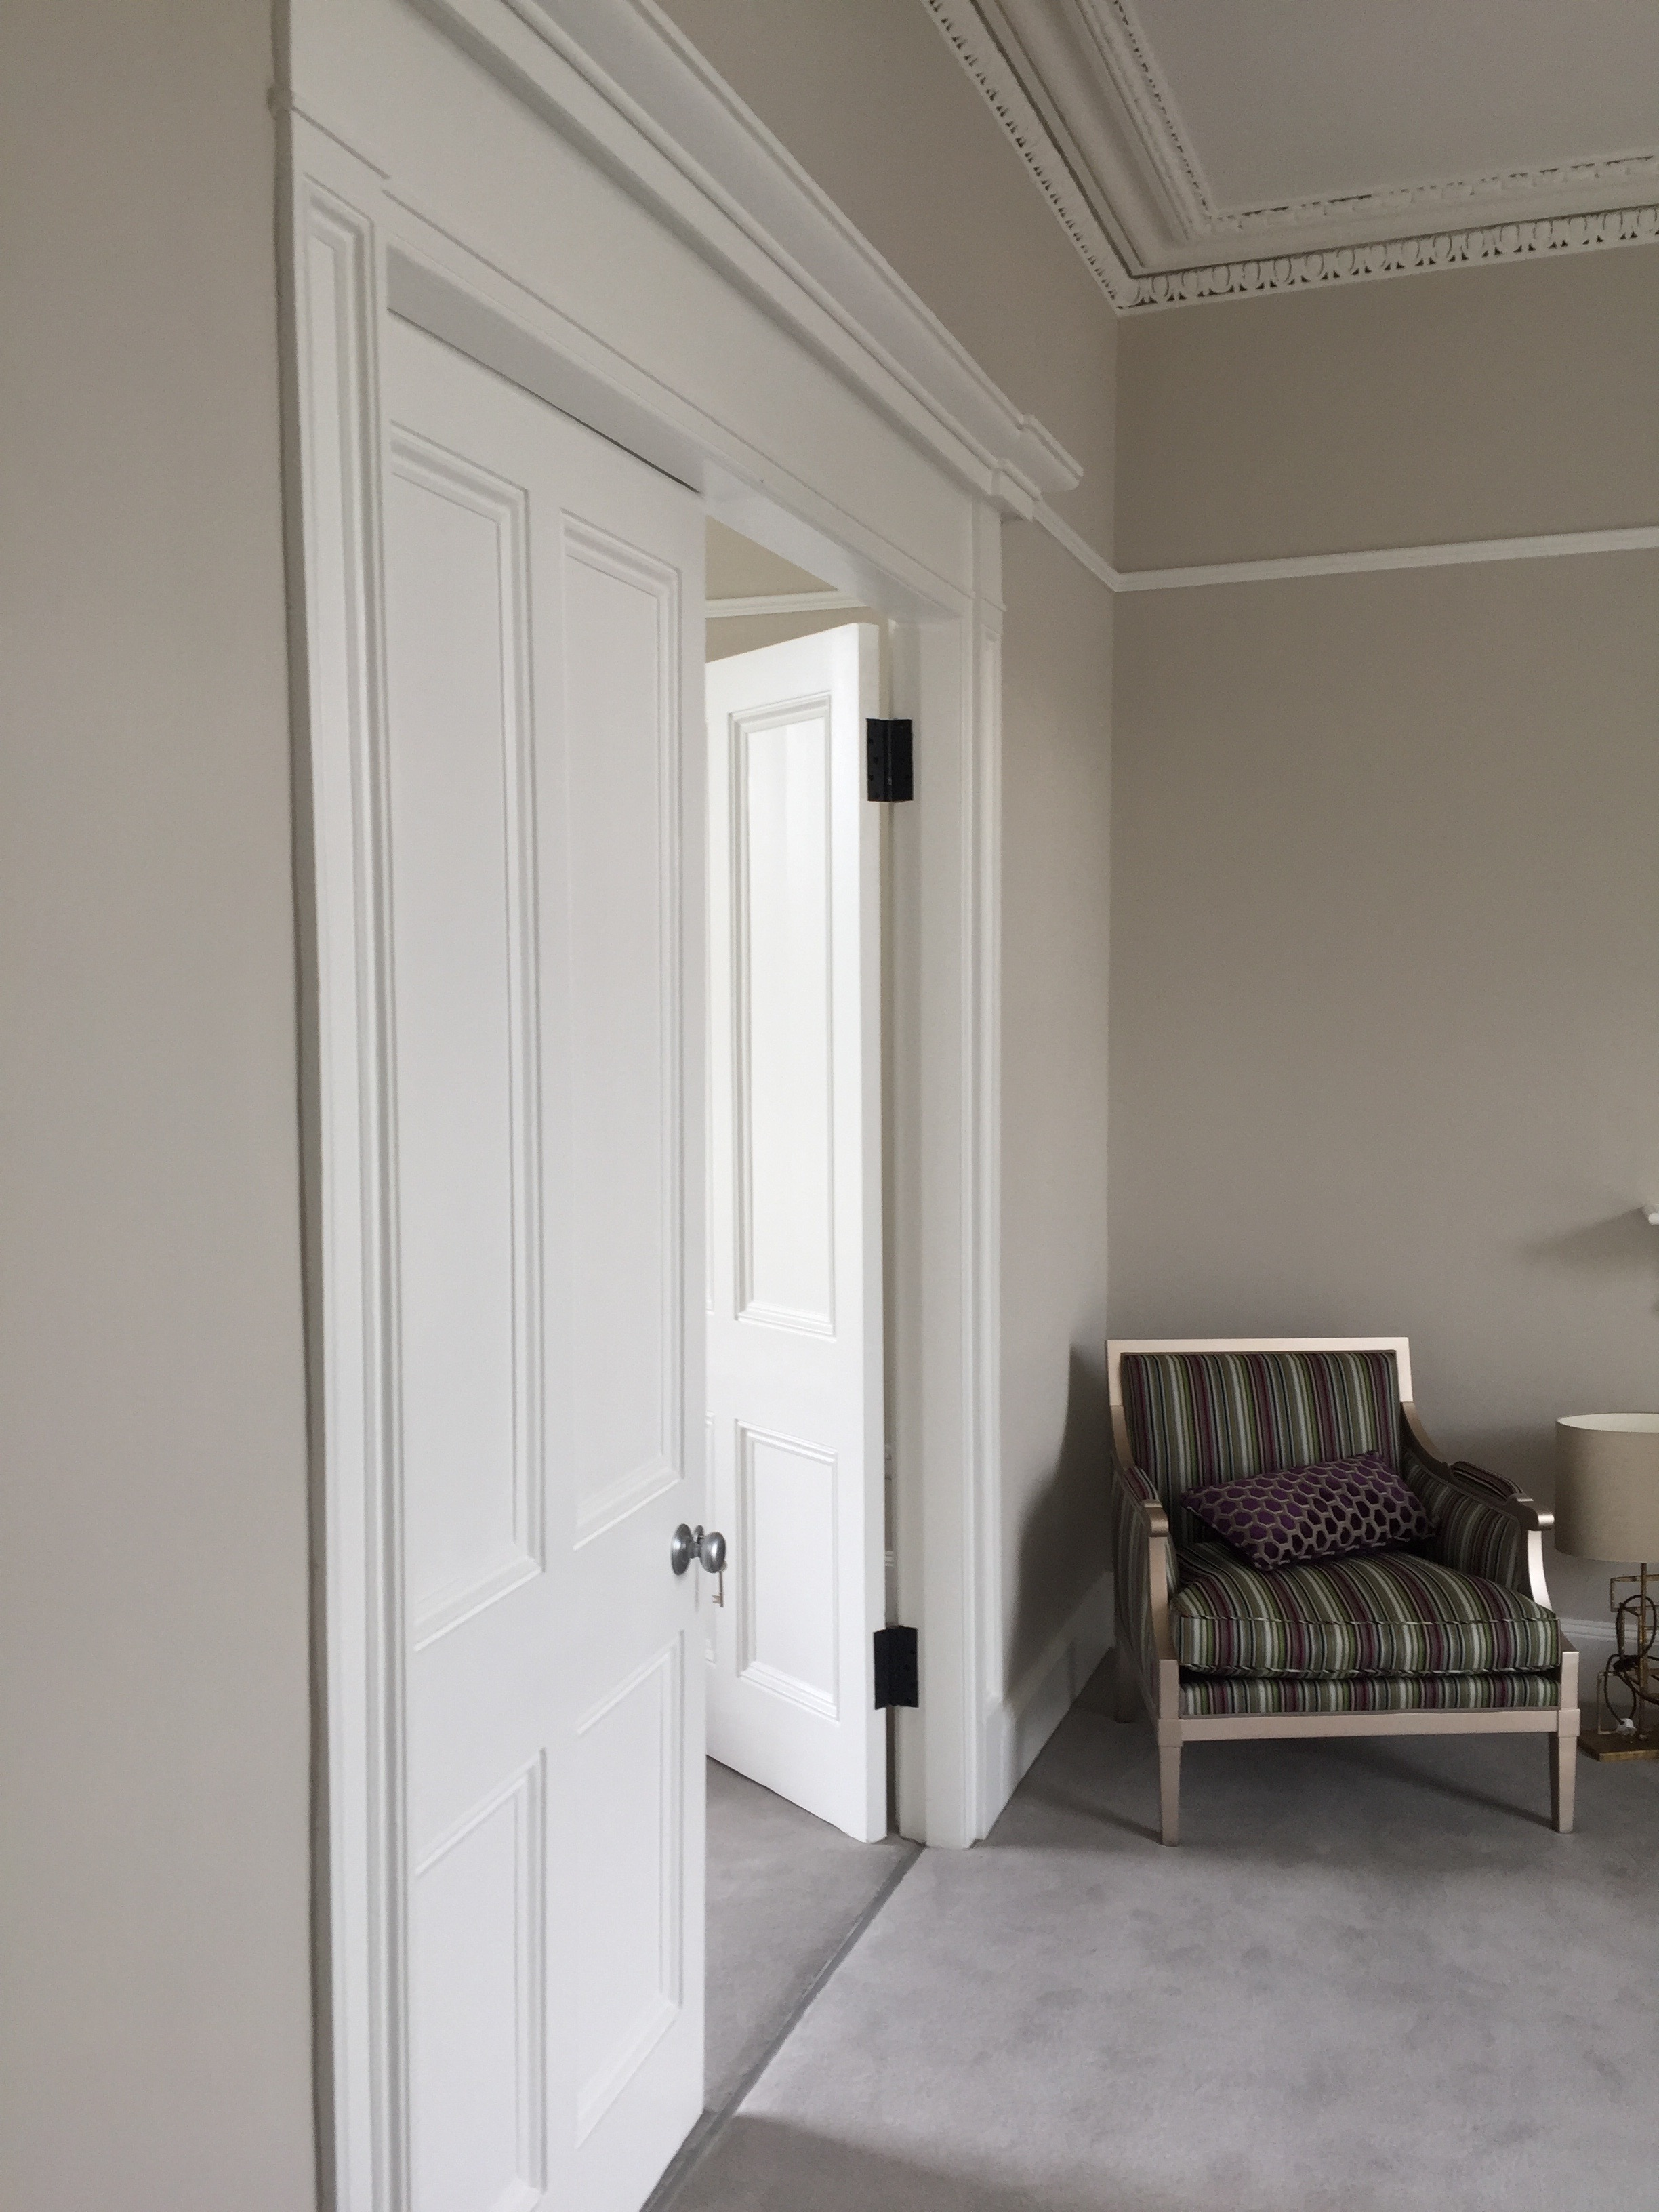 Interior period door in Ranelagh painting and restoration by Impressions Painters and Decorators in Dublin